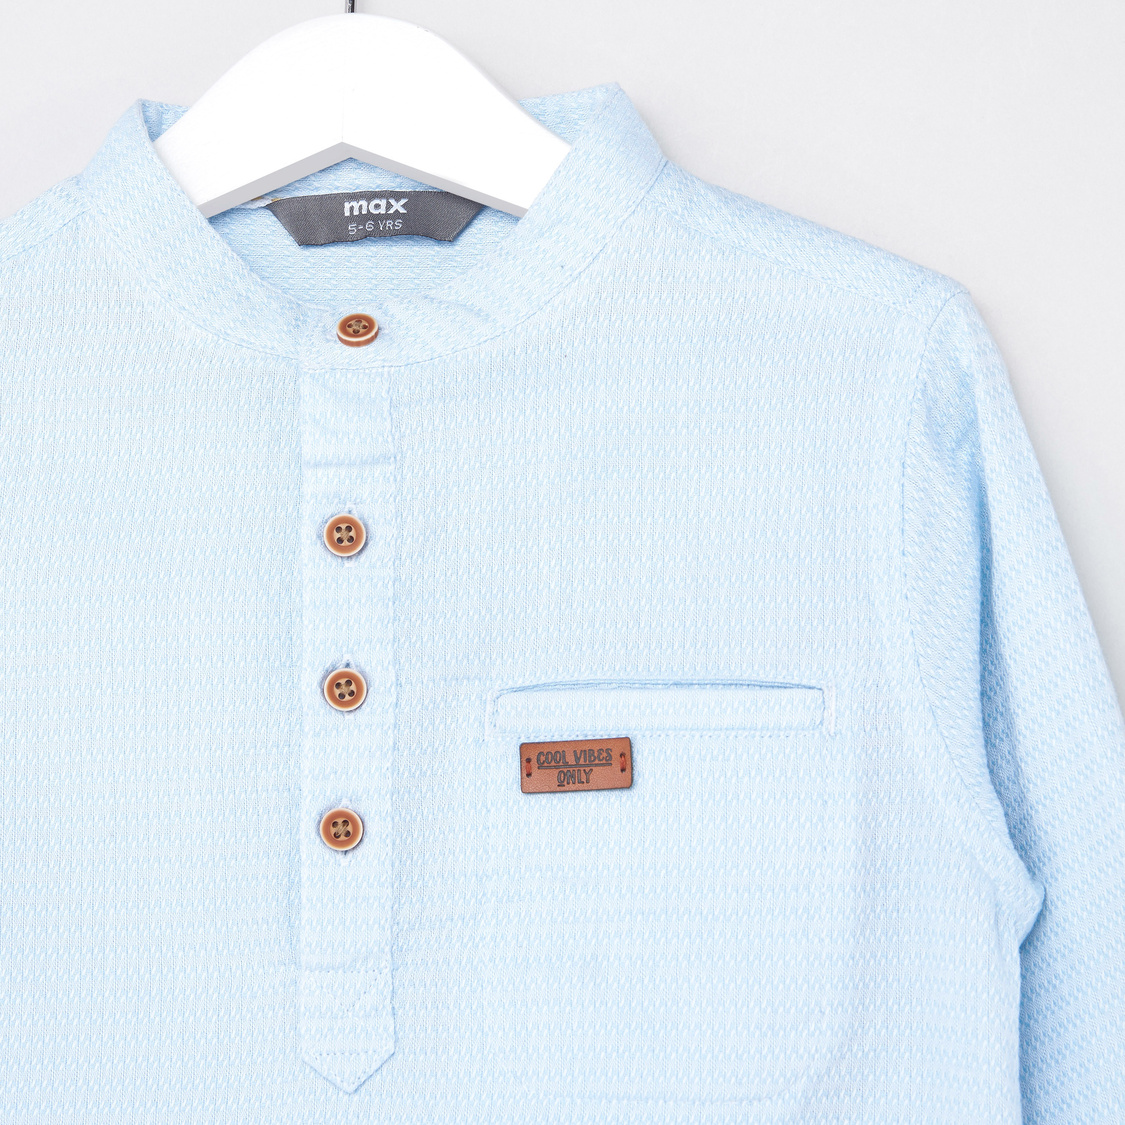 Textured Longline Shirt with Henley Neck and Long Sleeves